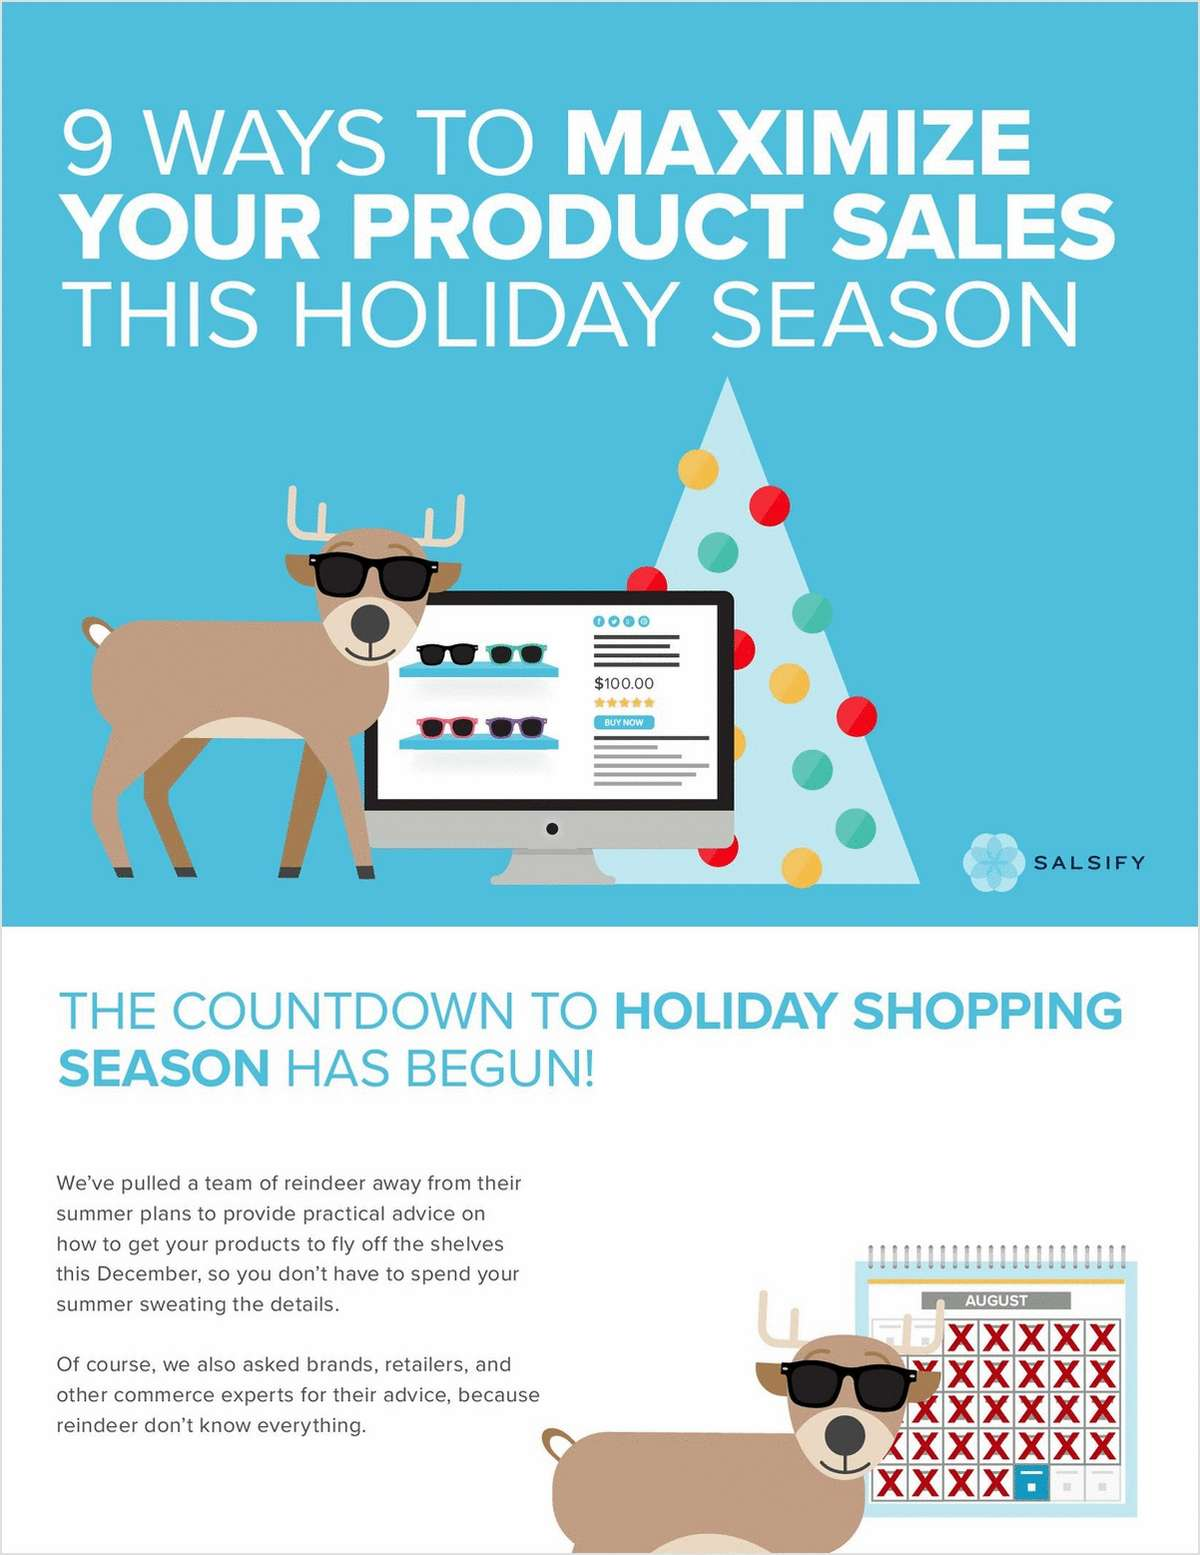 9 Ways to Maximize Your Product Sales This Holiday Season